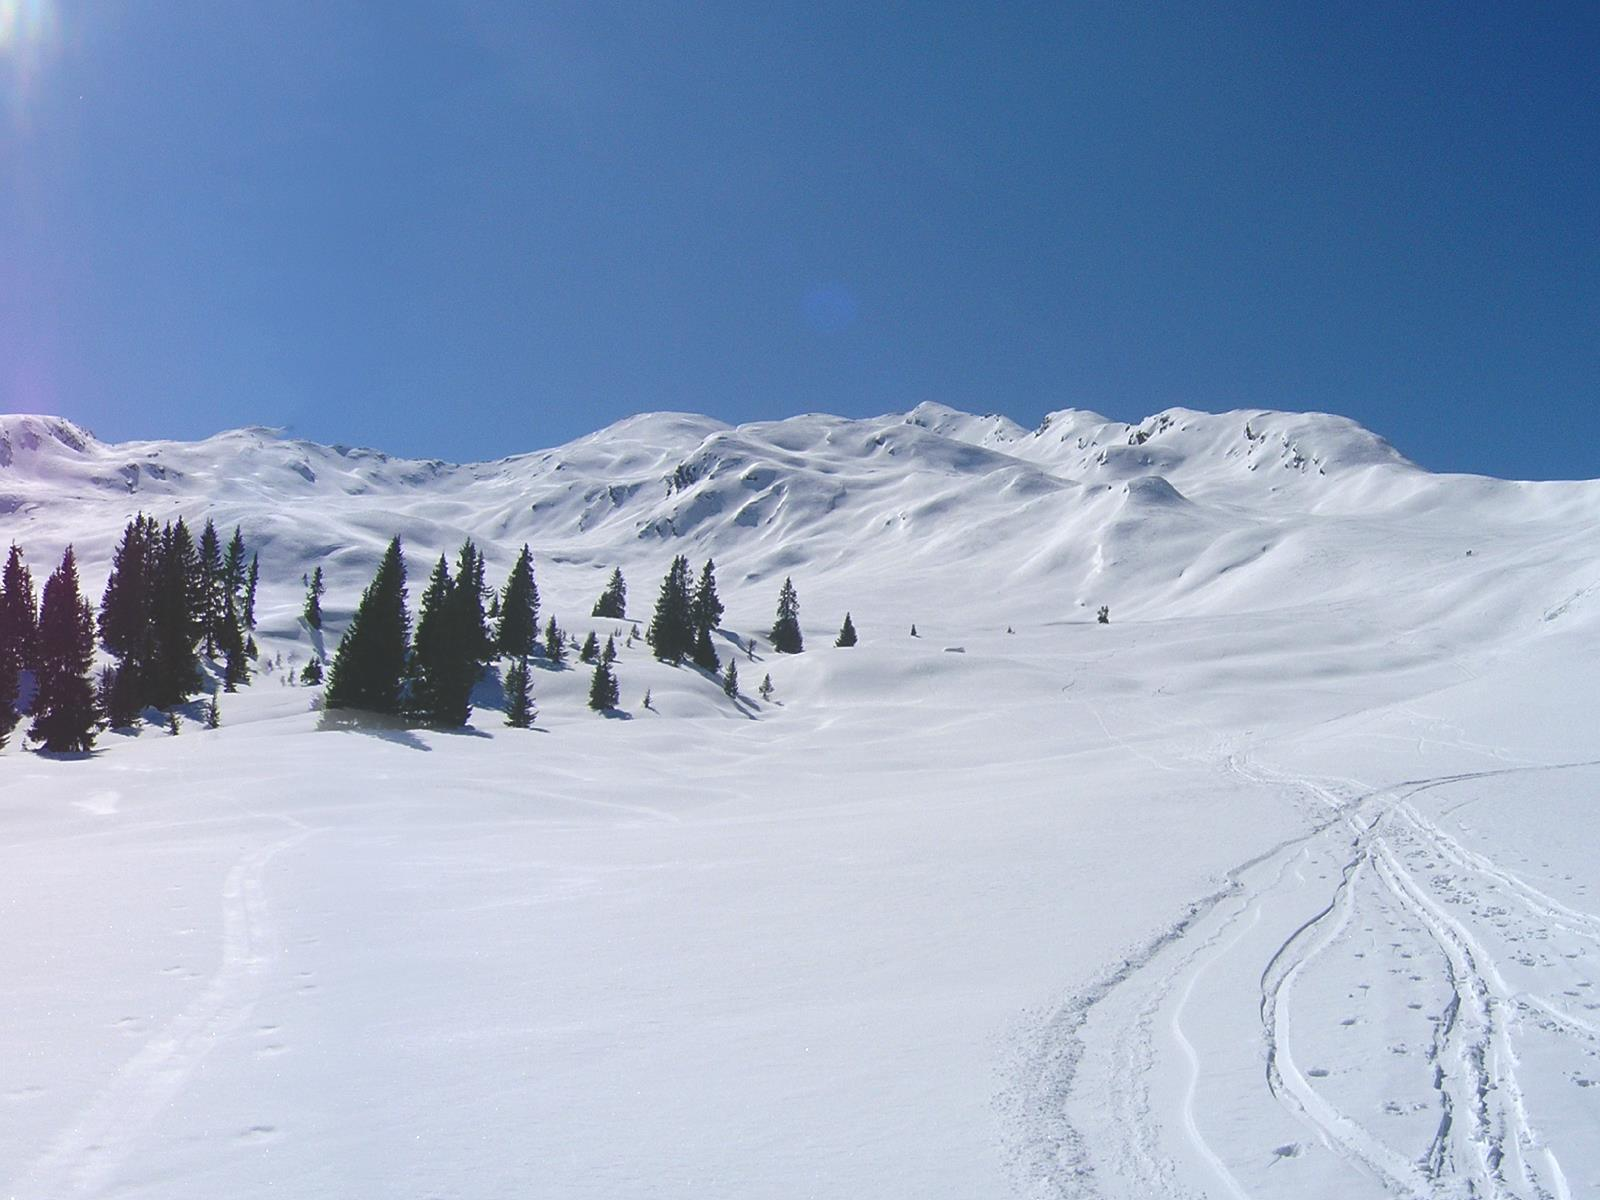 Fleckner summit ski tour